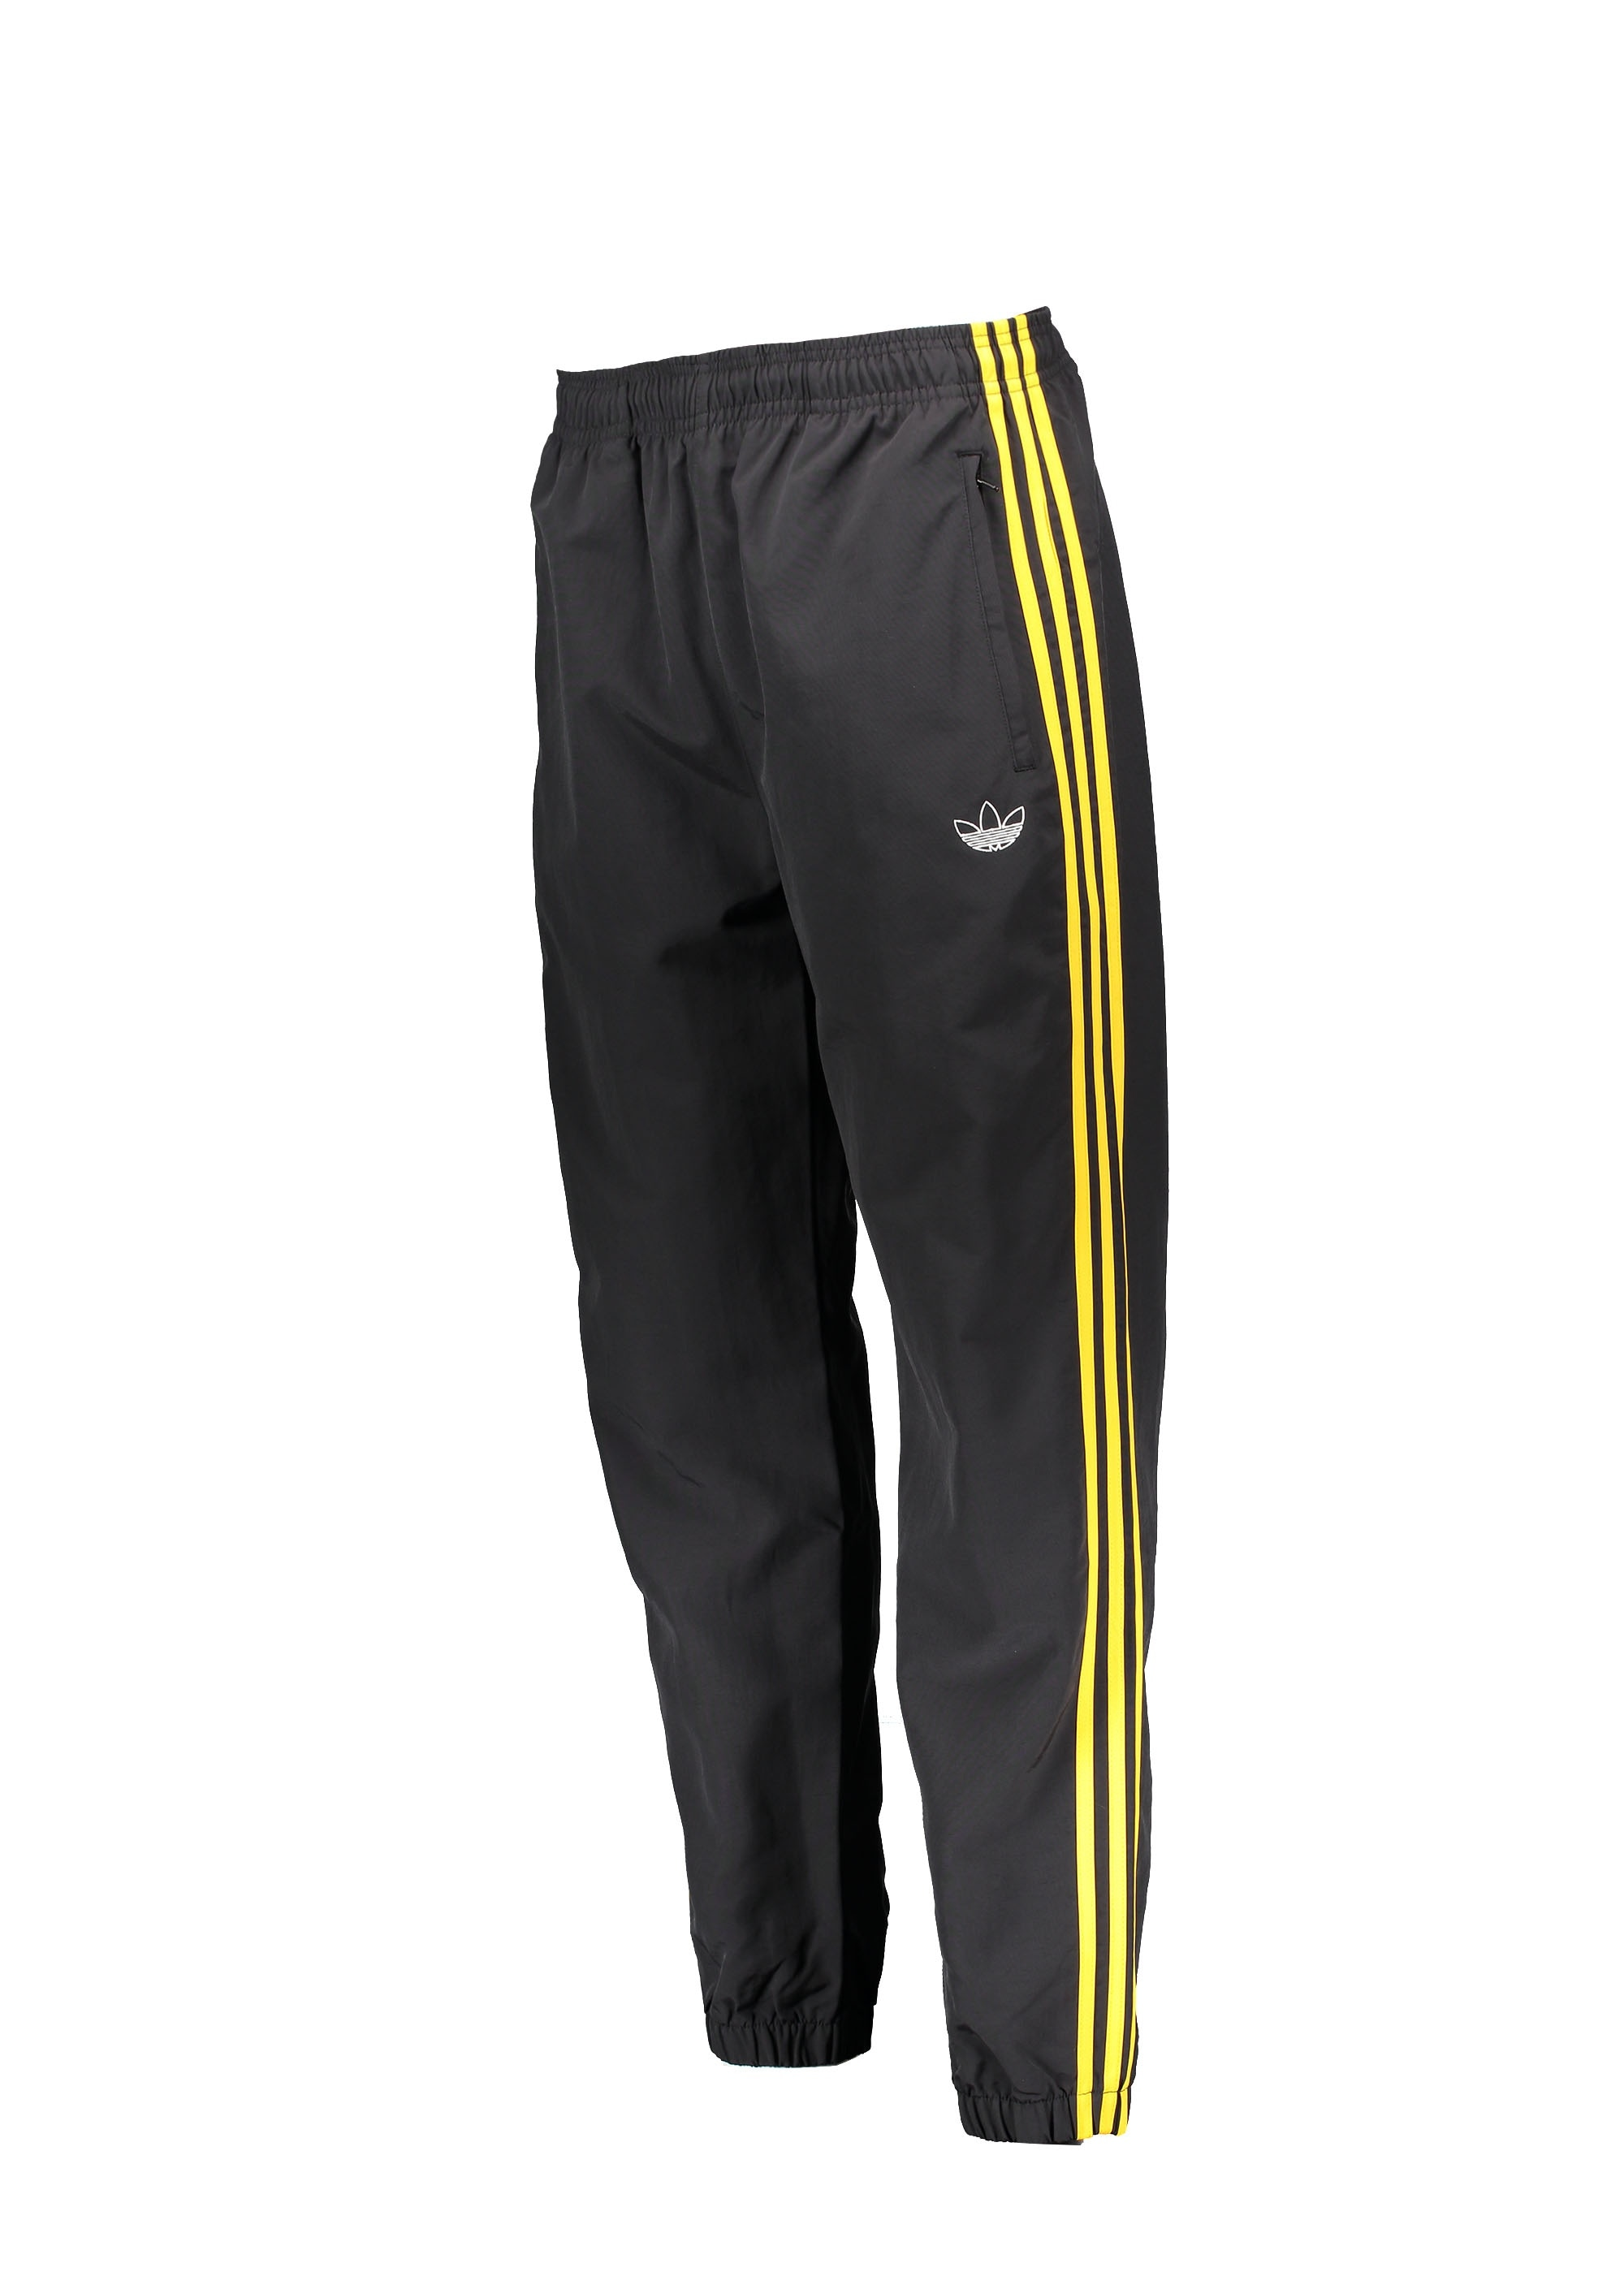 adidas Originals Apparel Tourney Warm Up Pants Black Yellow